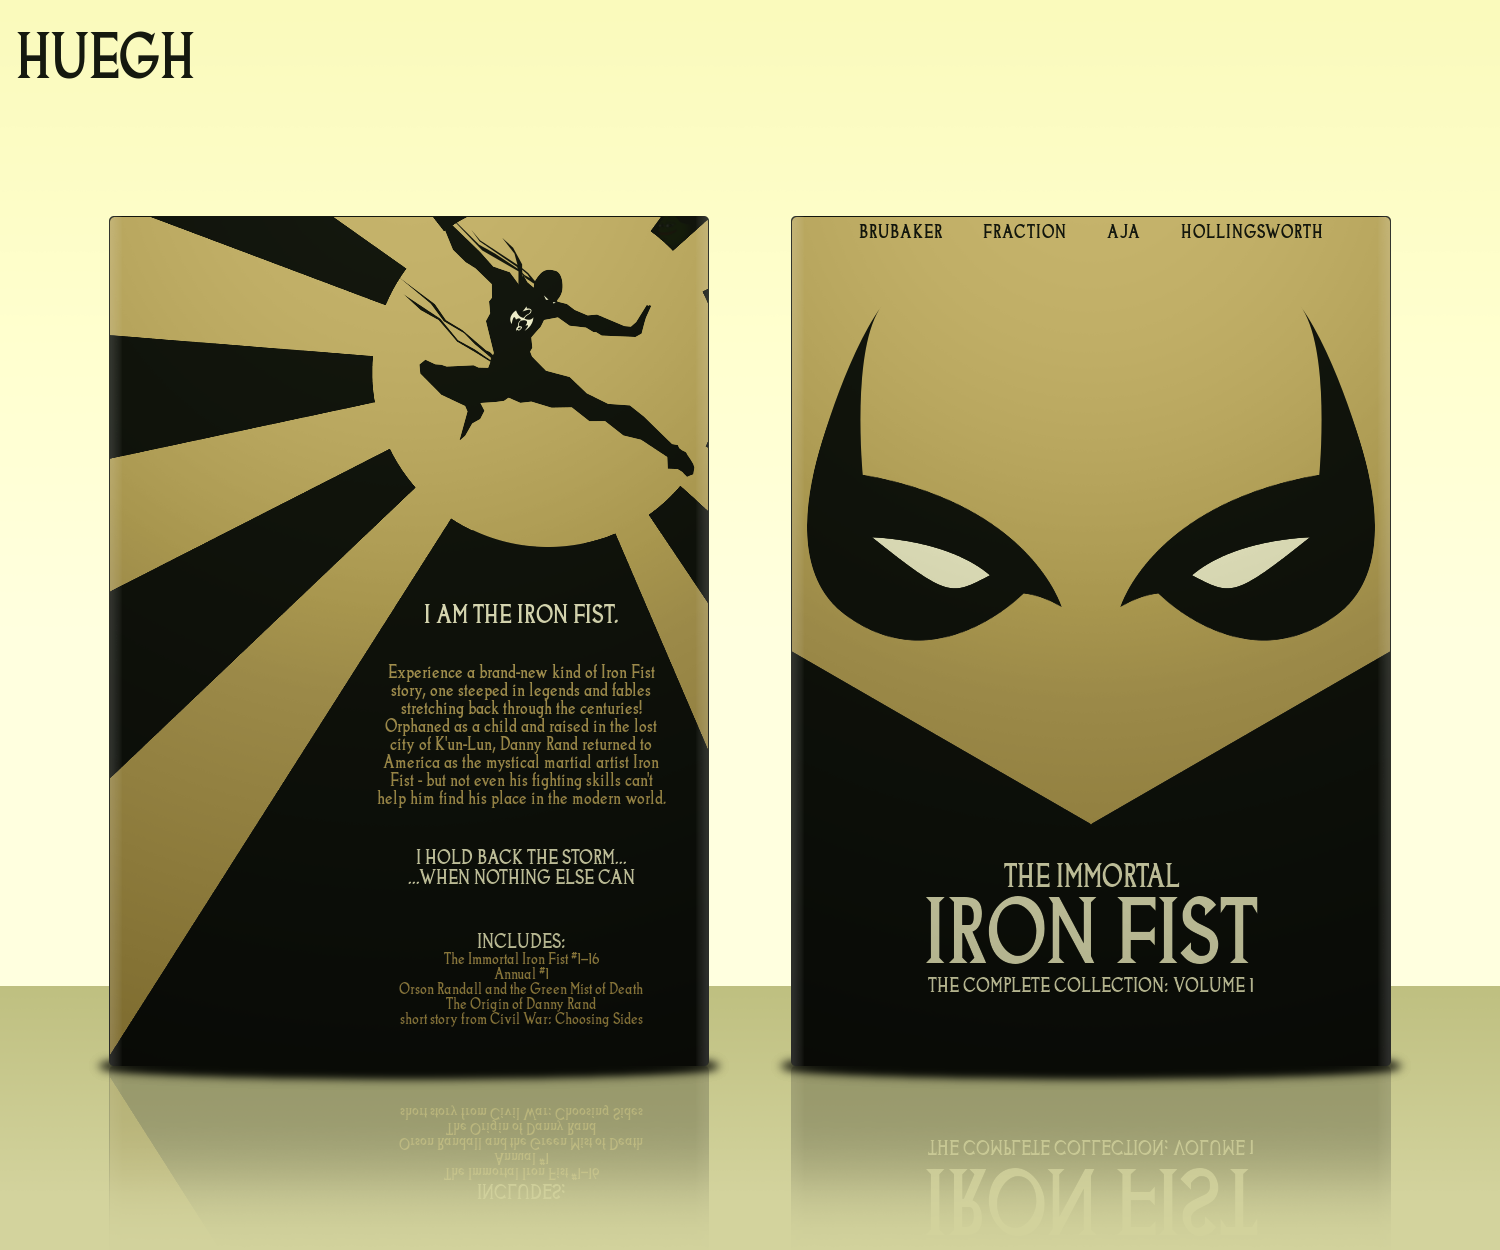 The Immortal Iron Fist: Volume 1 box cover